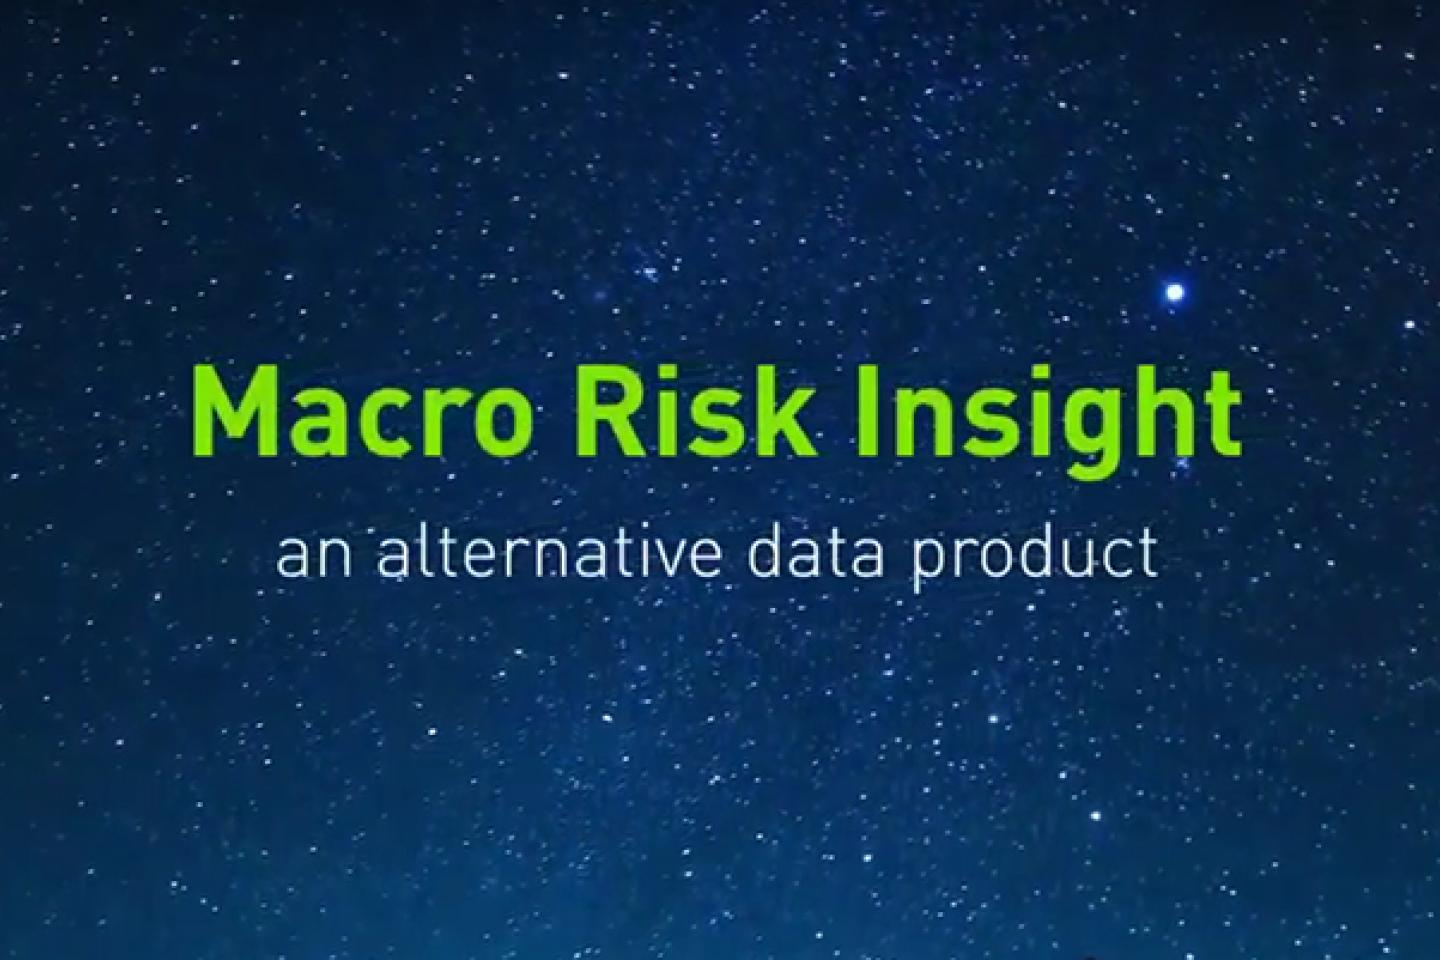 Macro Risk Insight